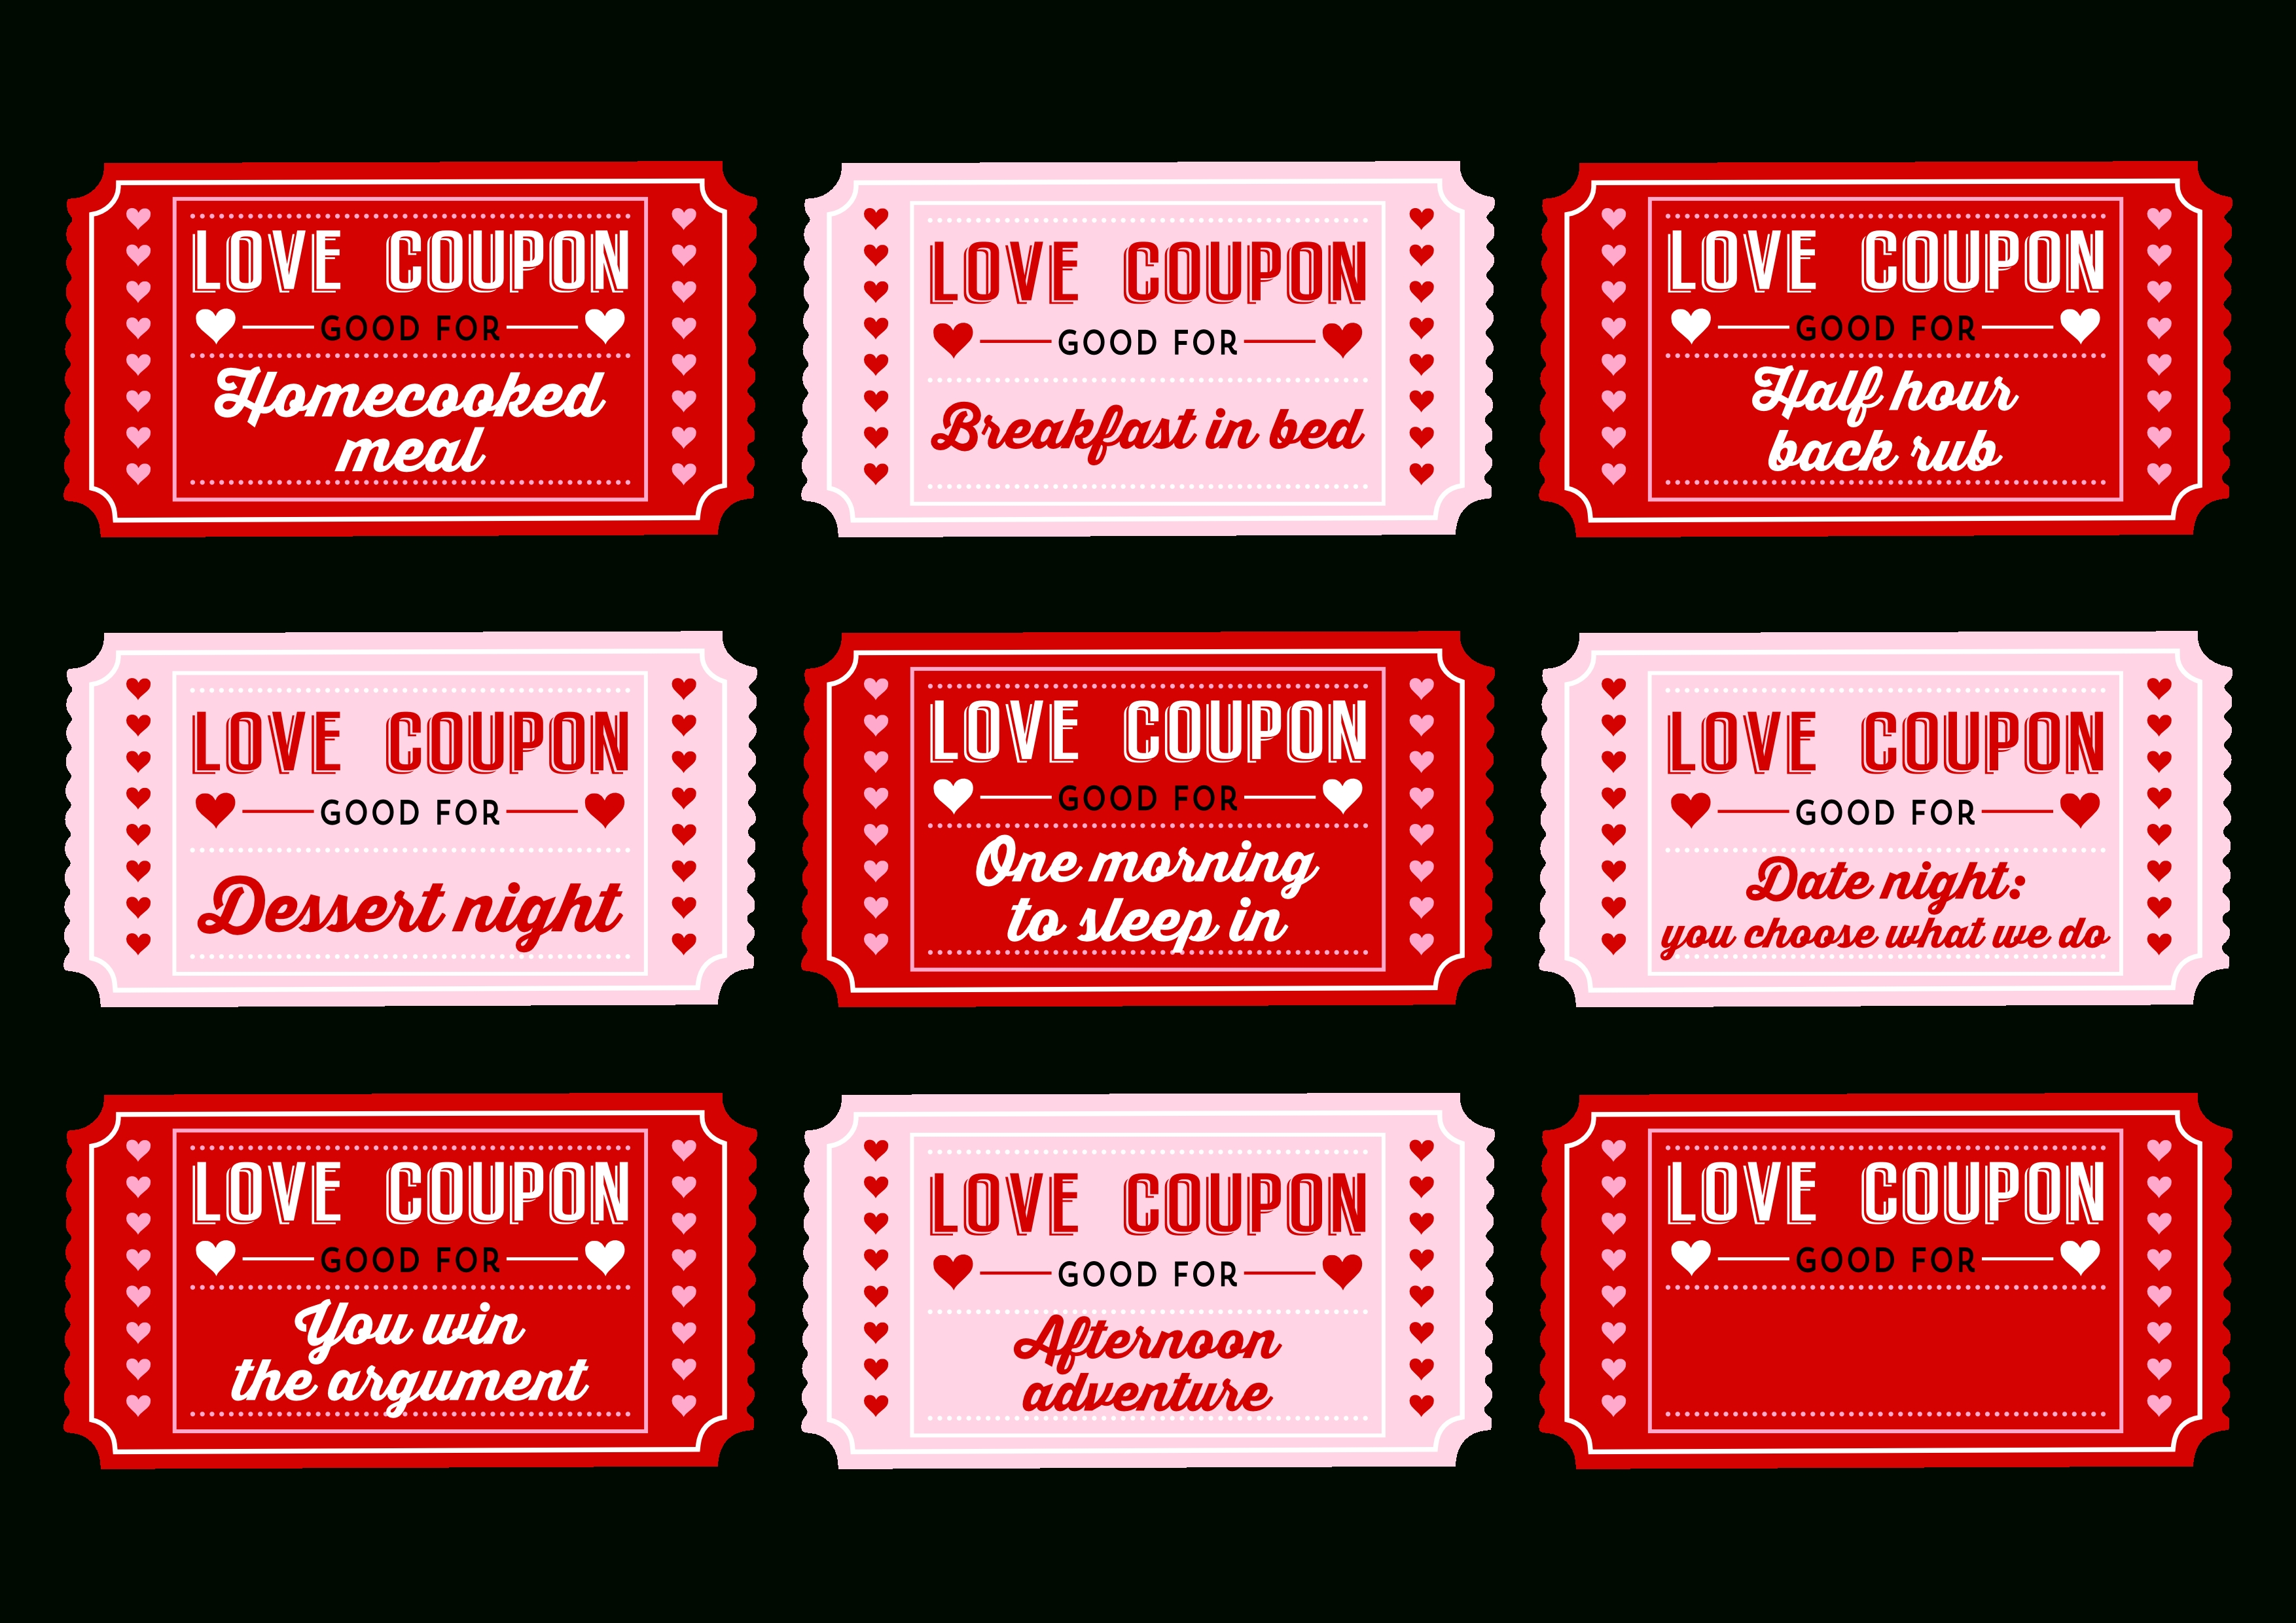 10 Stylish Love Coupon Ideas For Her 2019